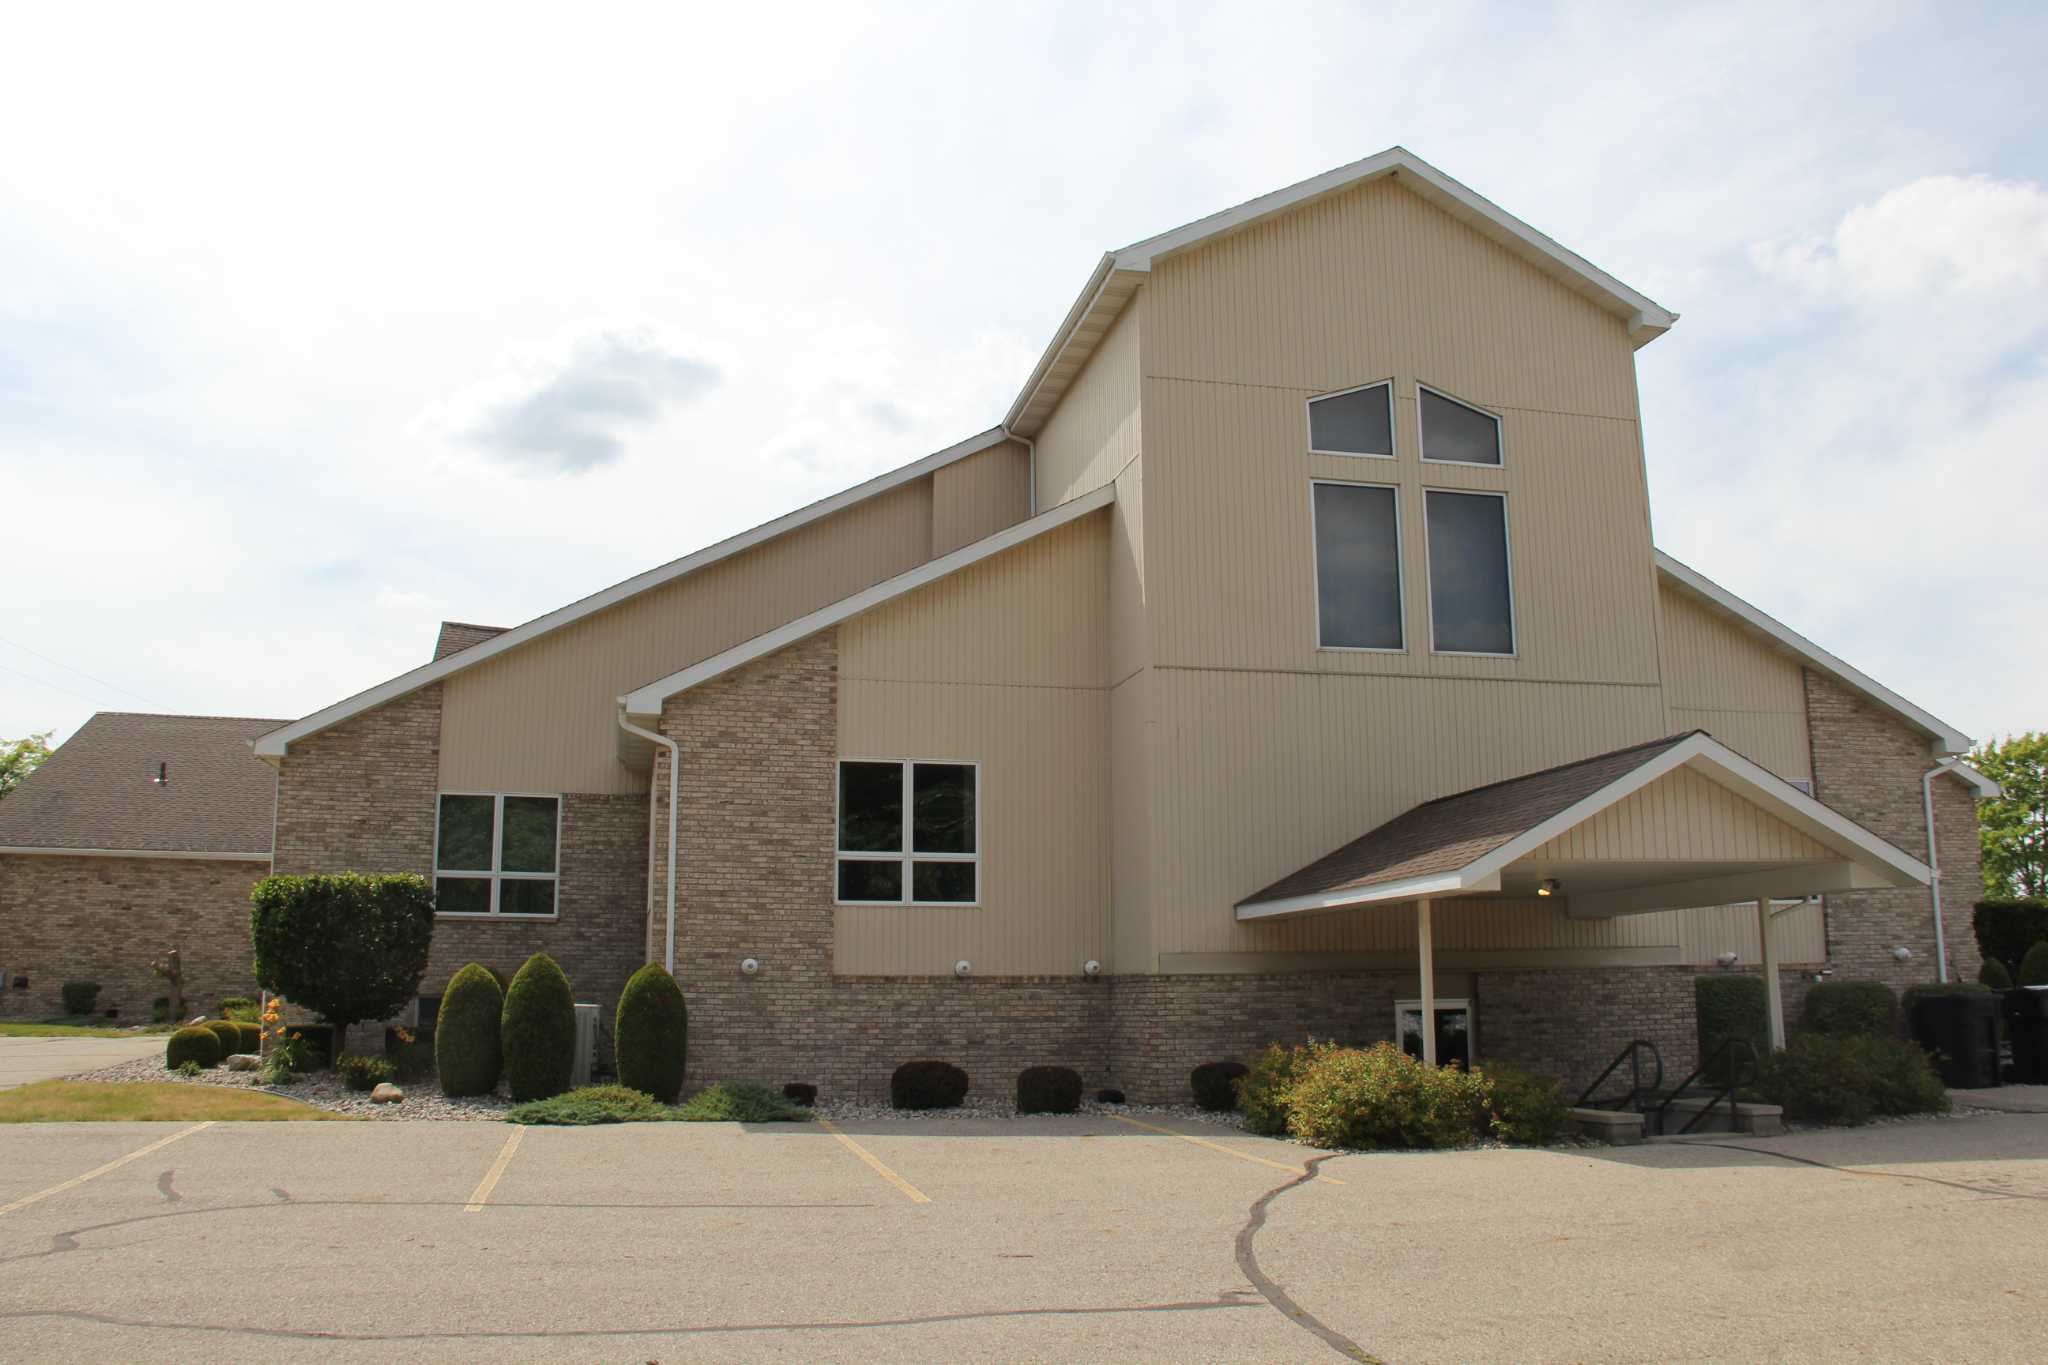 Pigeon River Mennonite Church Suspends Services After Members Come Down With Coronavirus Huron Daily Tribune